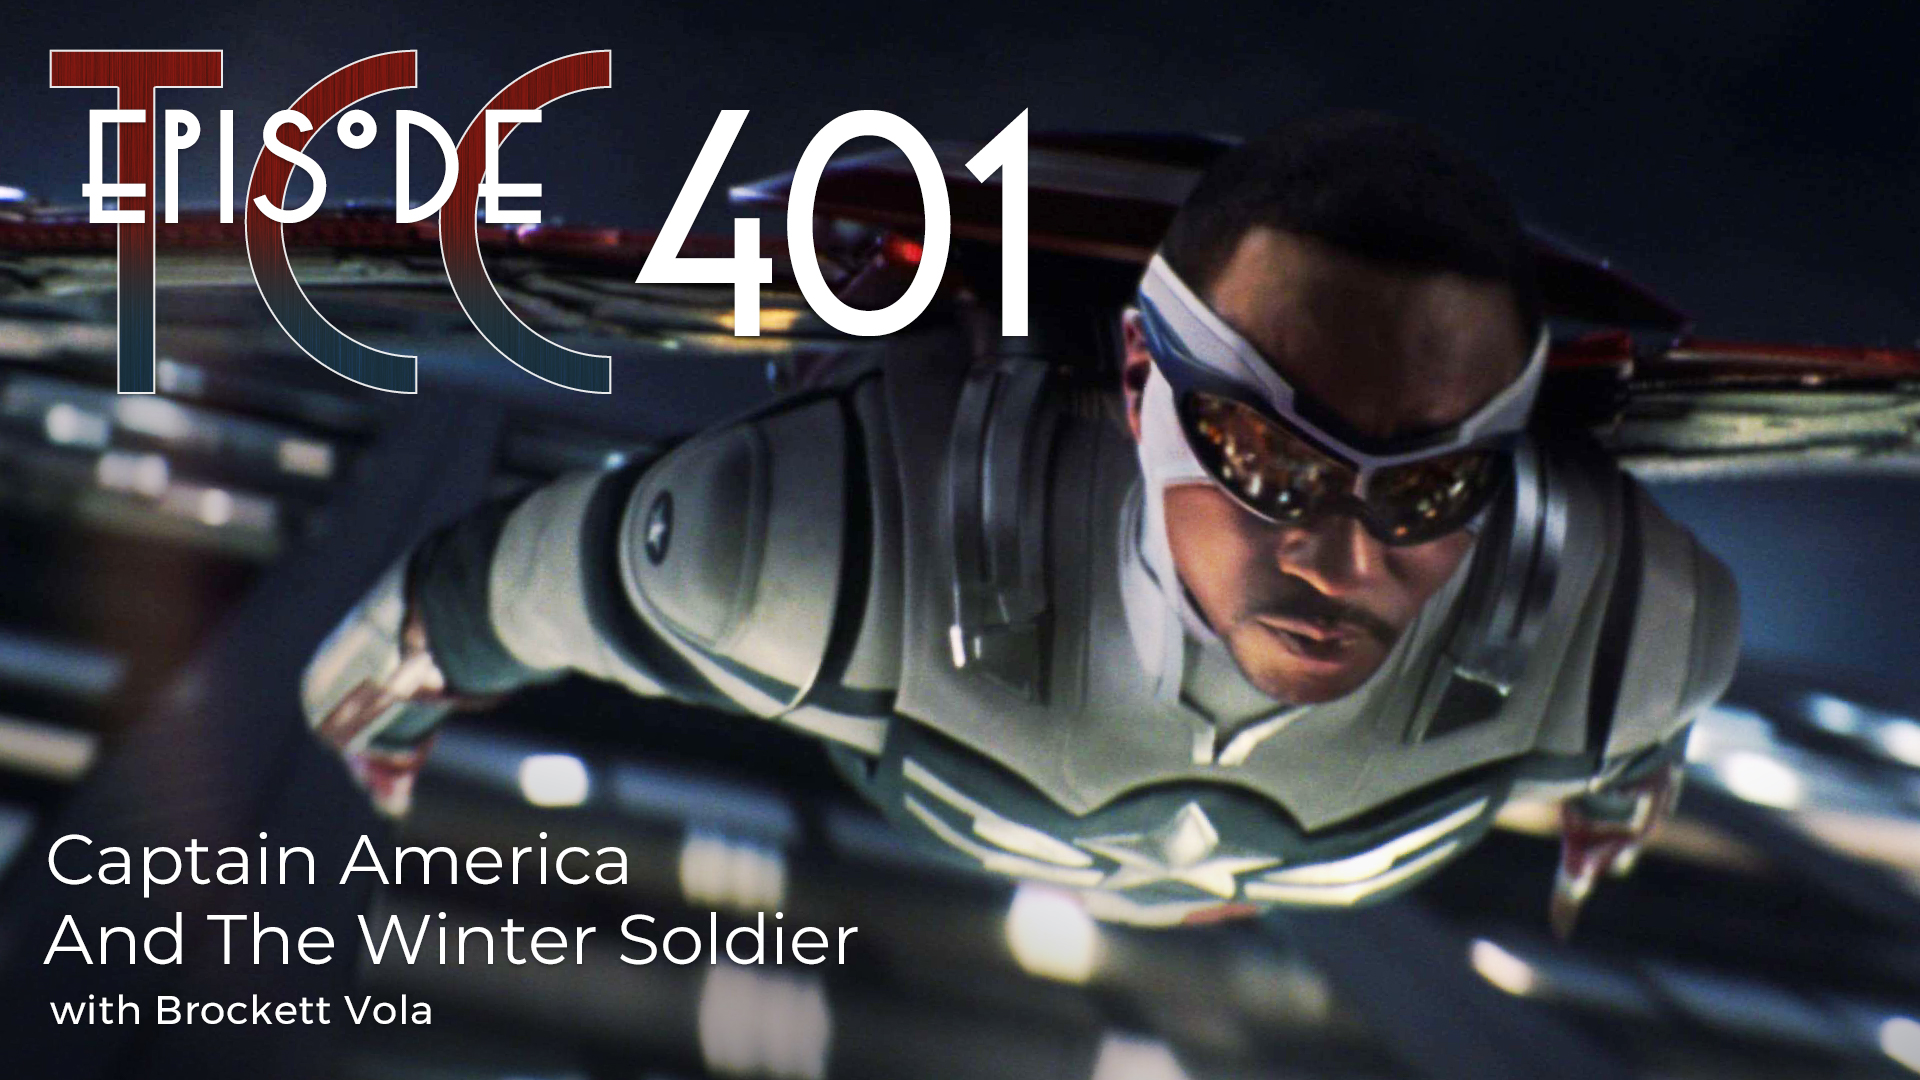 The Citadel Cafe 401: Captain America And The Winter Soldier